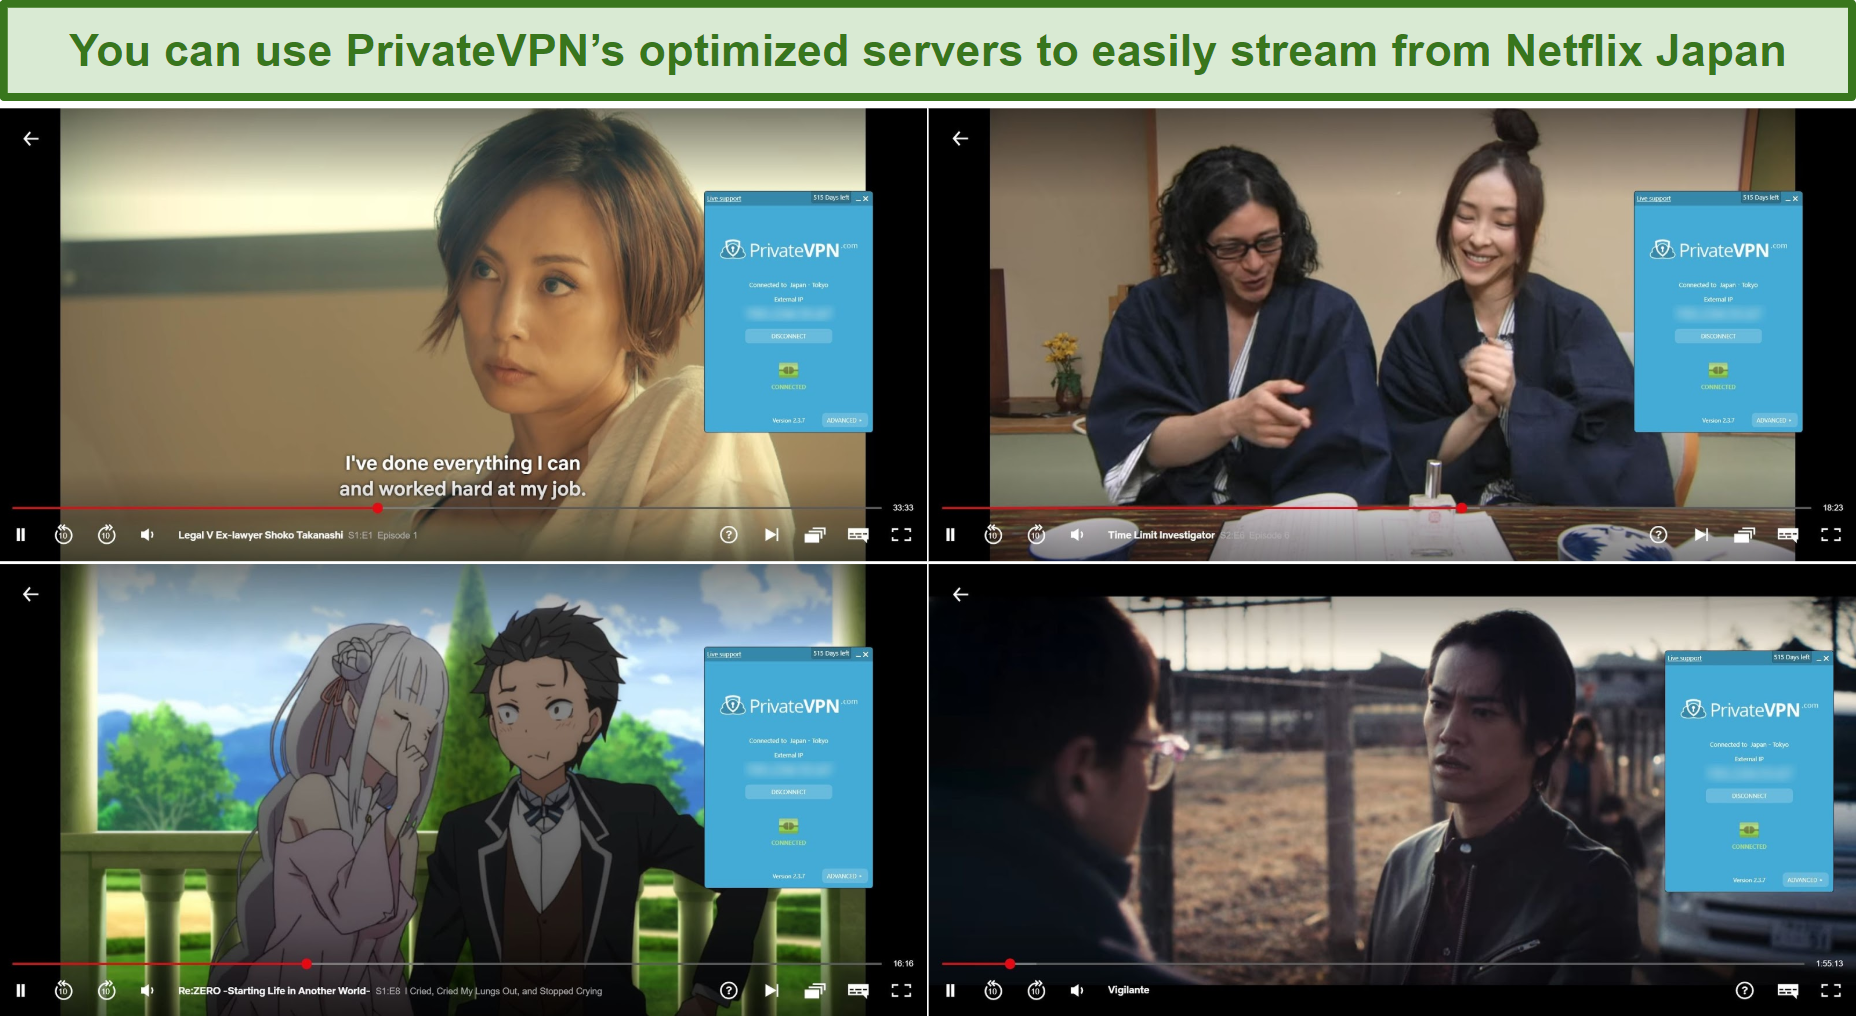 Screenshot of PrivateVPN unblocking Legal V Ex-lawyer Shoko Takanashi, Time Limit Investigator, Re:ZERO - Starting Life in Another World, and Vigilante on Netflix Japan